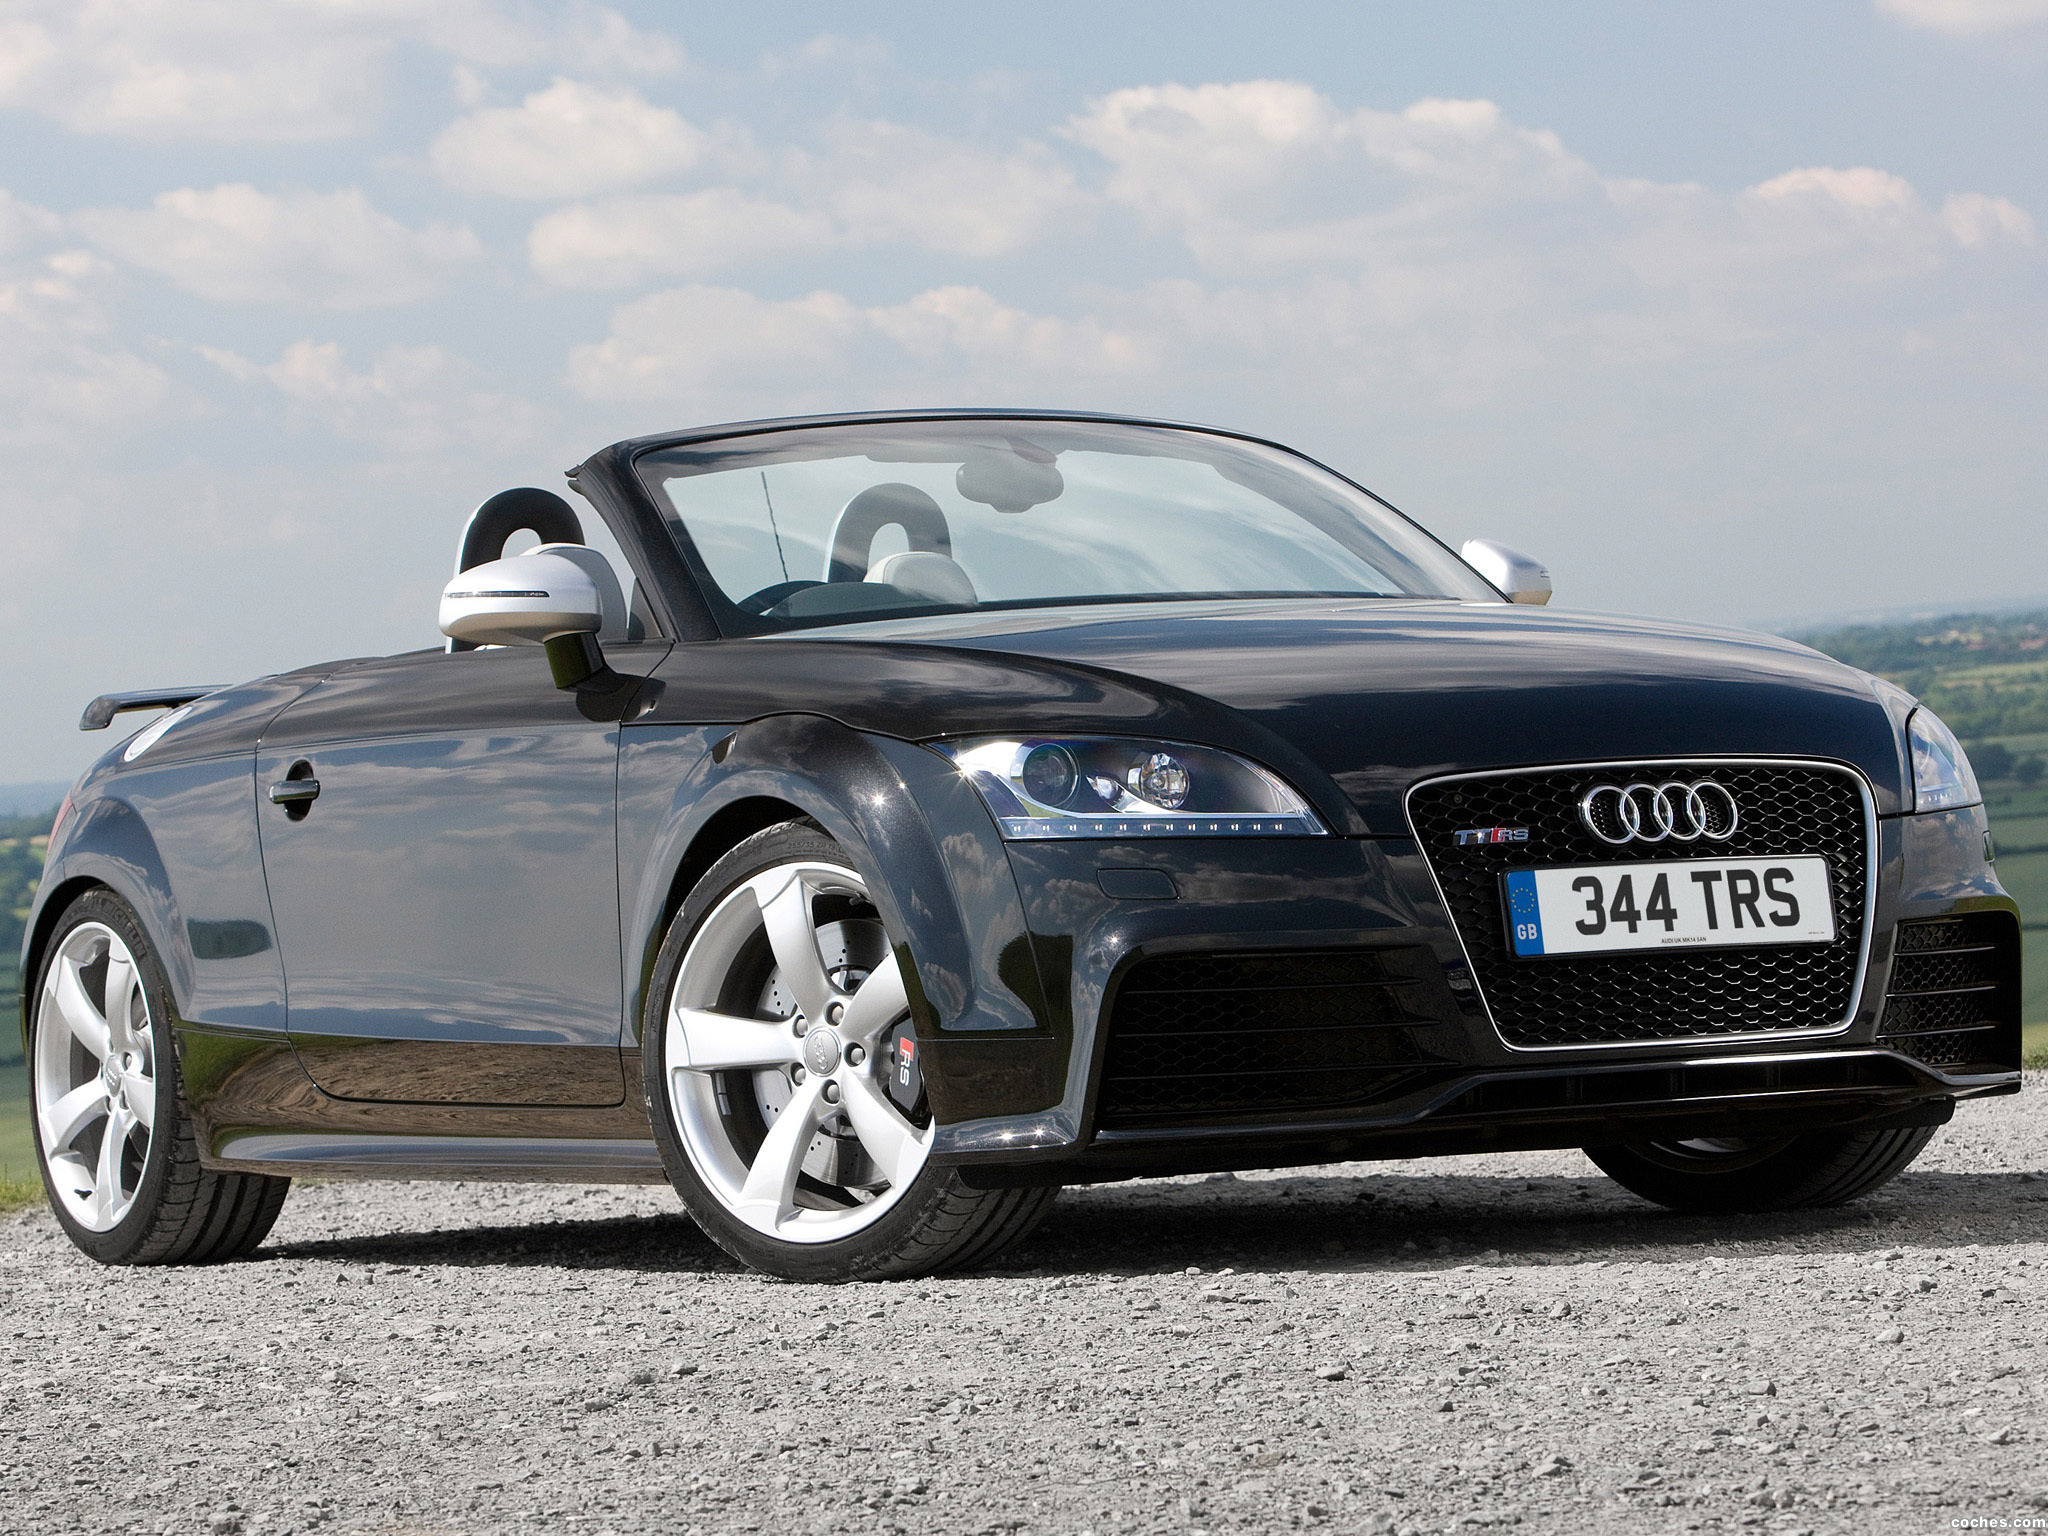 Foto 0 de Audi TT RS Roadster UK 8J 2009